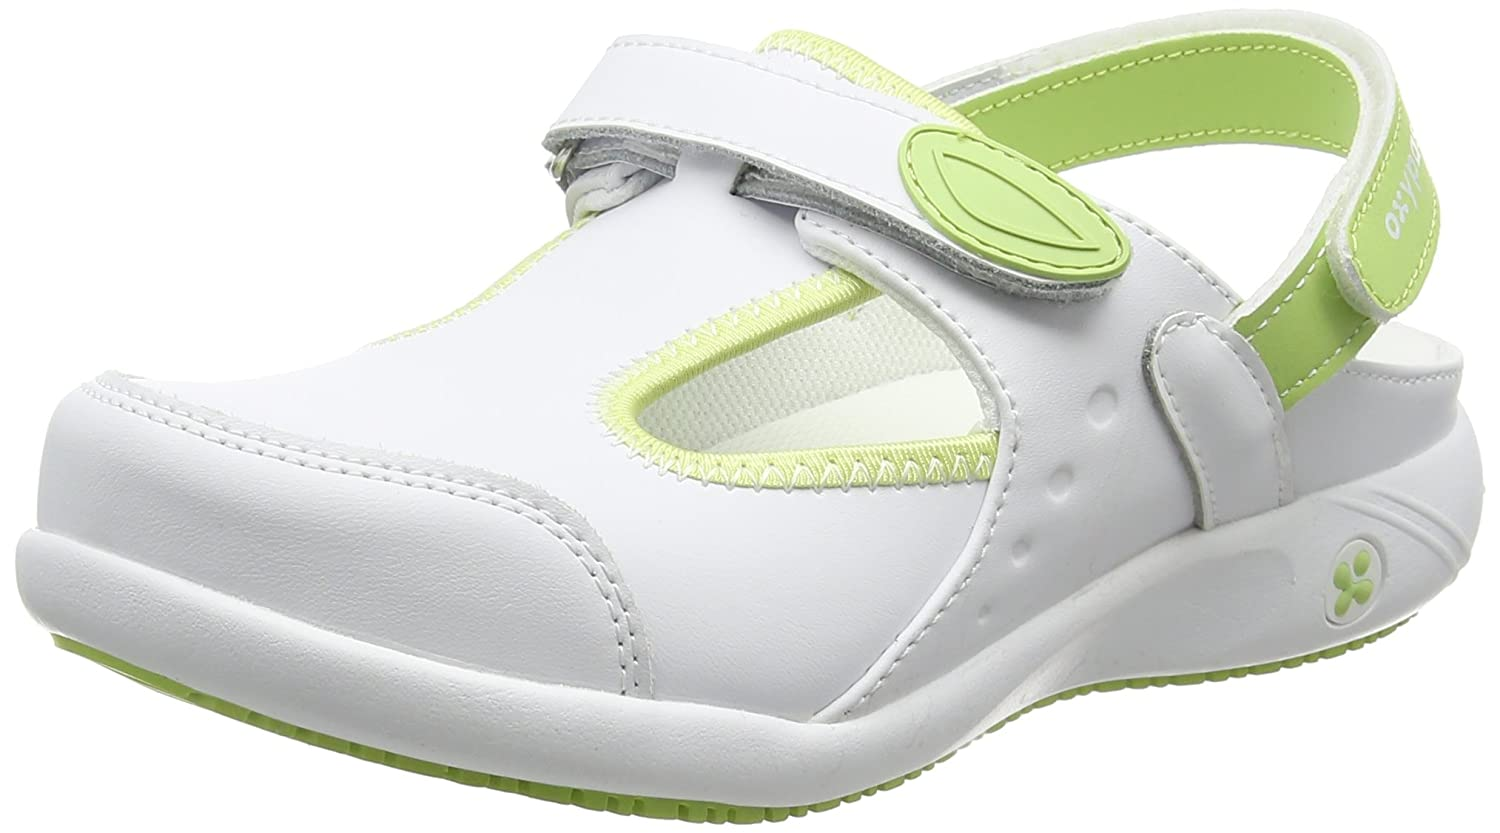 Oxypas Move Carin Slip-resistant, Antistatic Nursing Schuhes, Weiß (Lgn), 6.5 UK (EU: 40) -